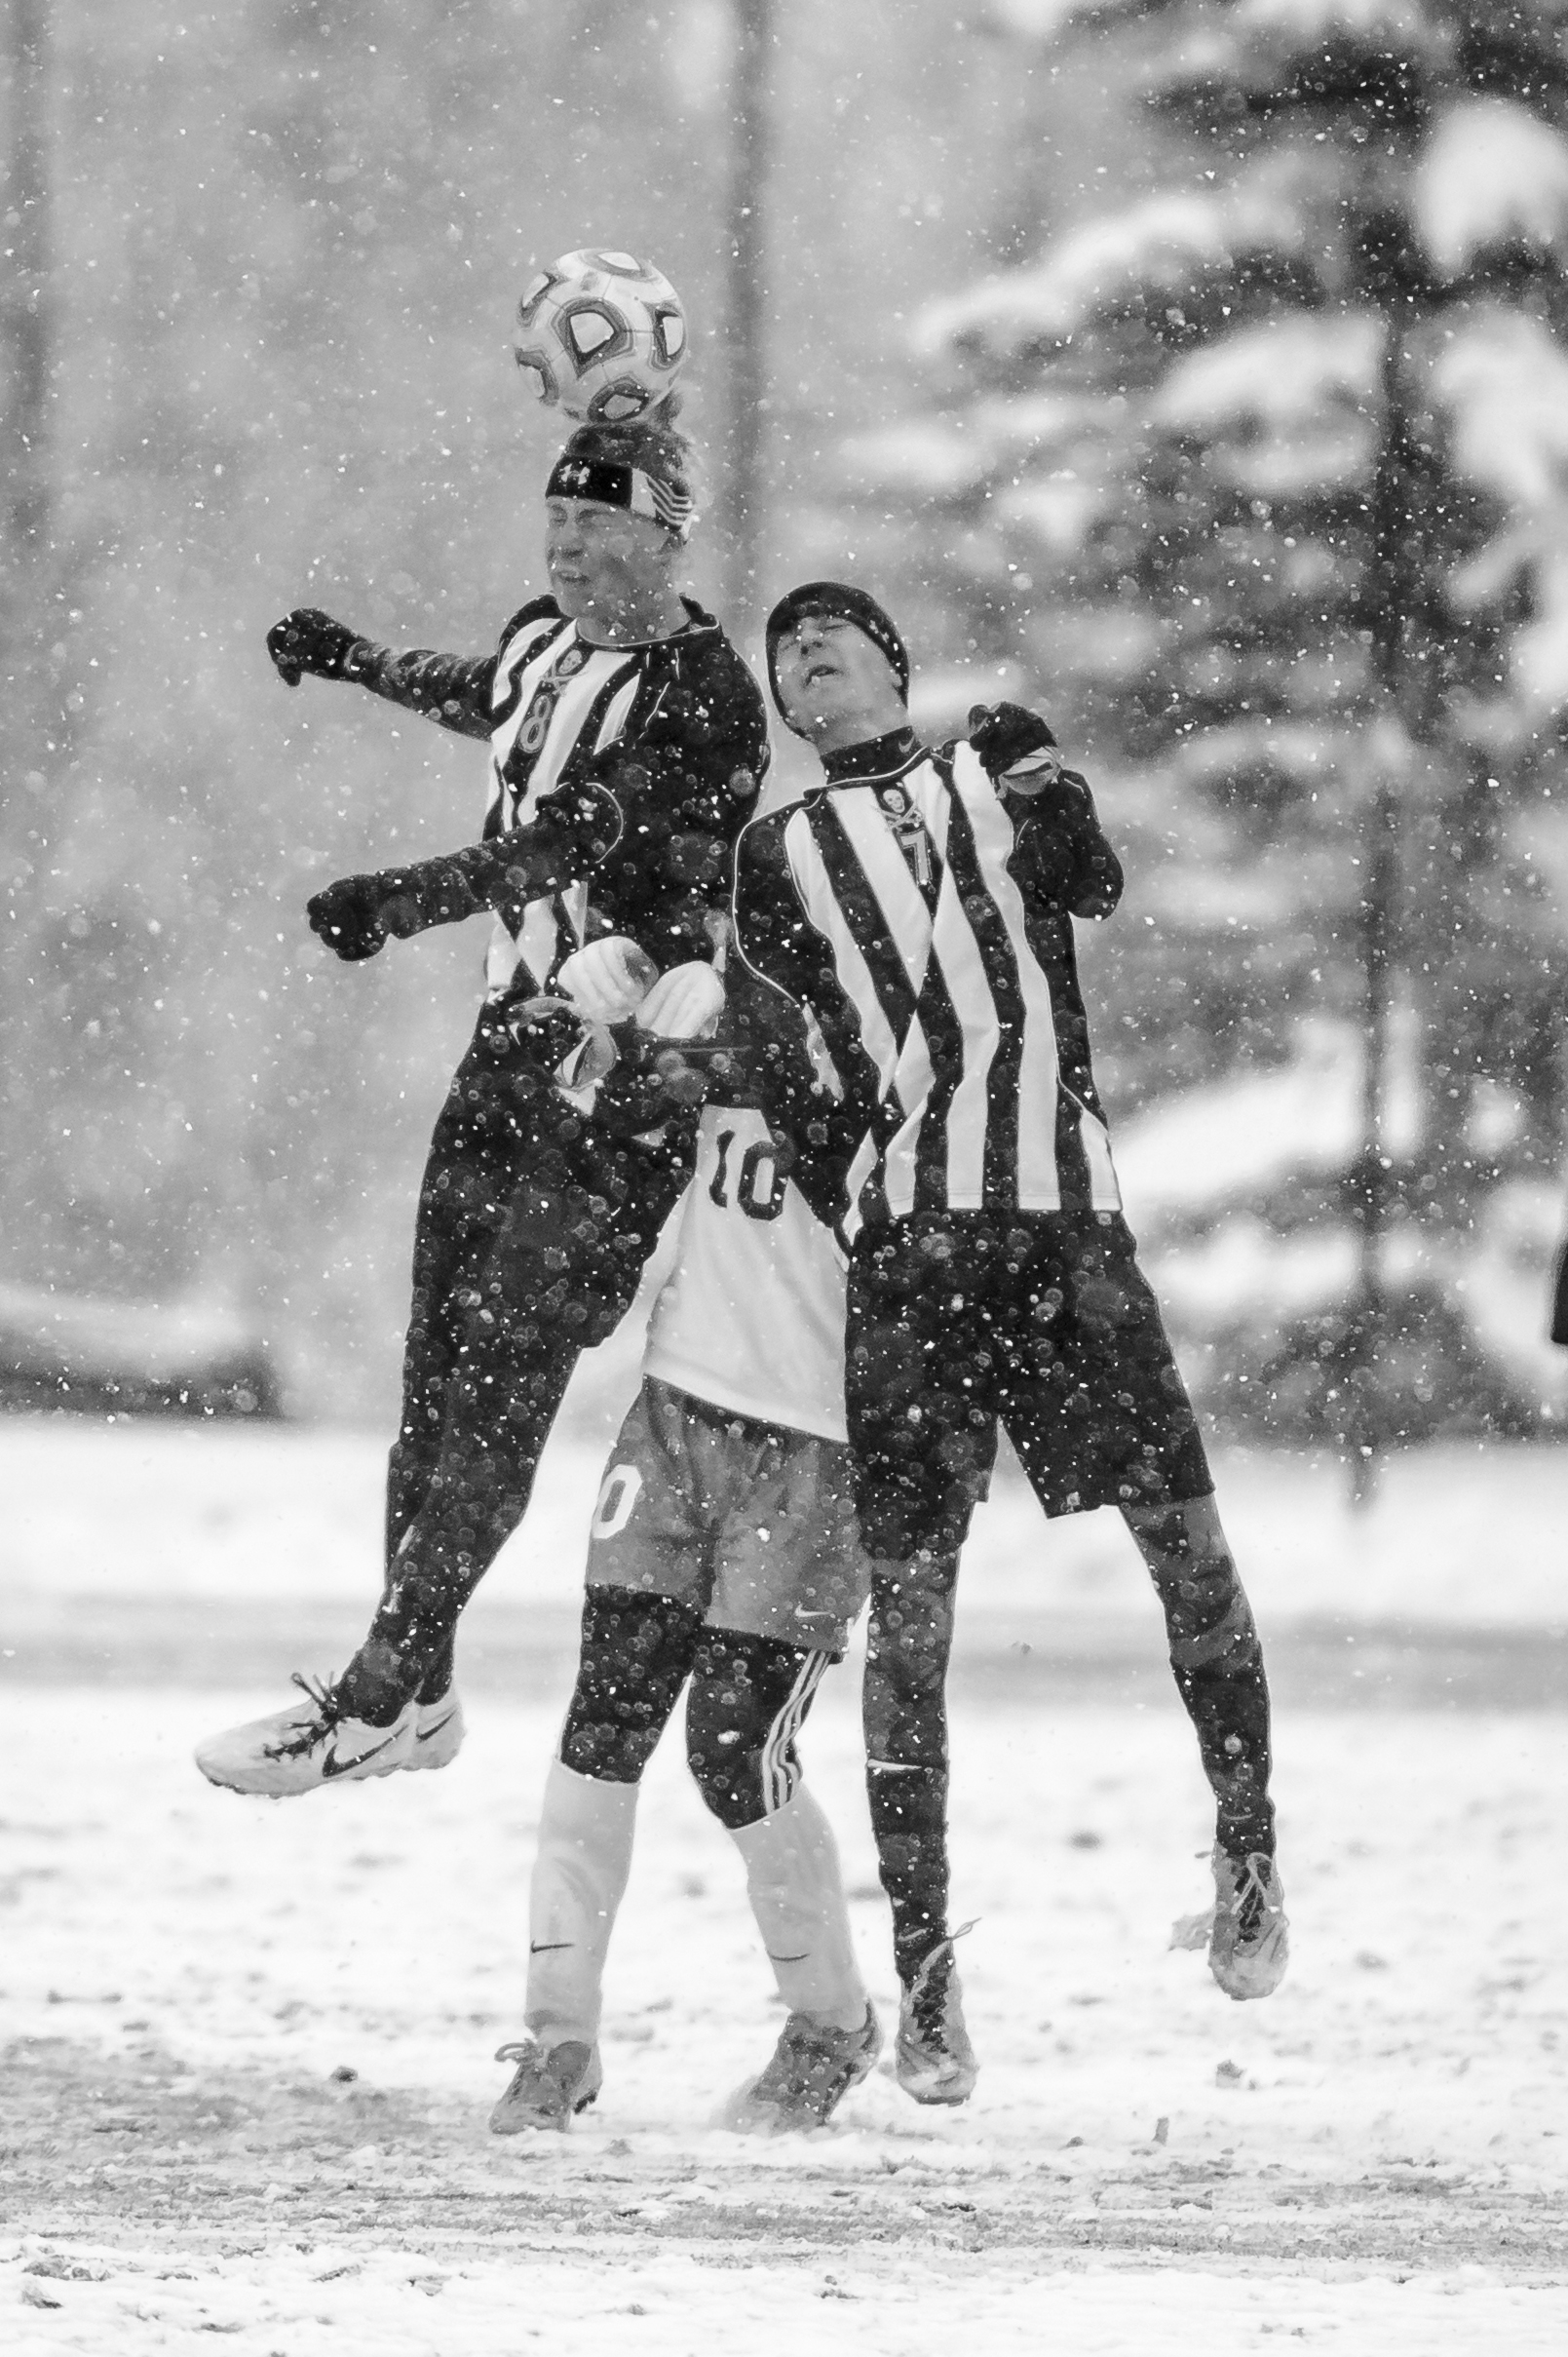 Players battle for a header through a heavy snowstorm during a playoff soccer game